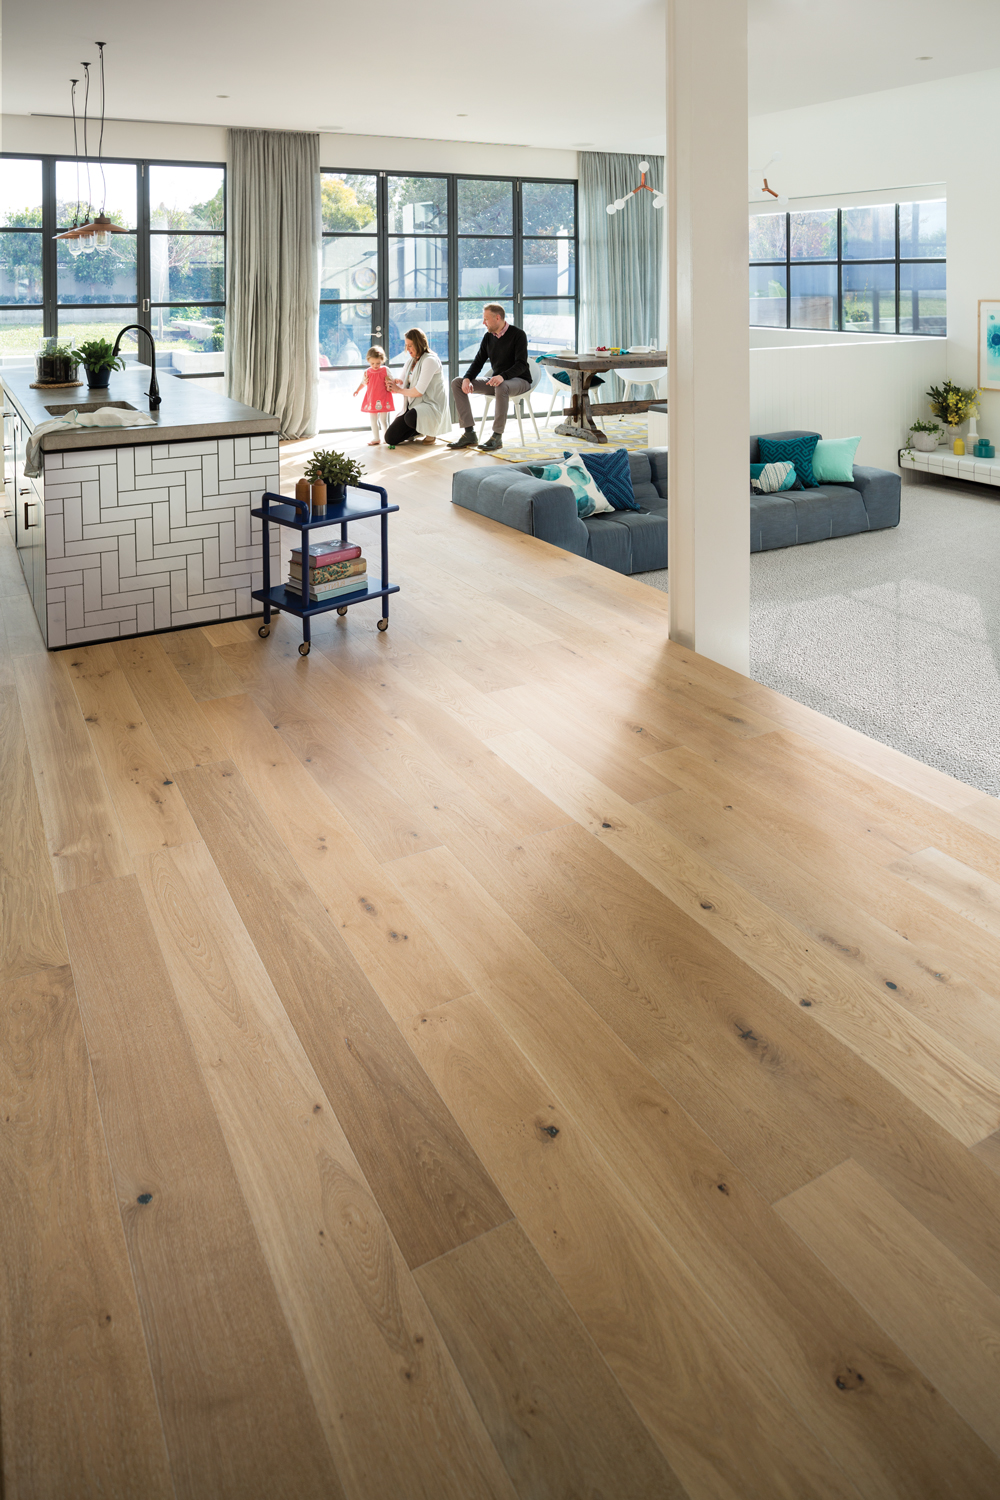 The Ultimate Mix And Match Flooring Guide - Choices Flooring